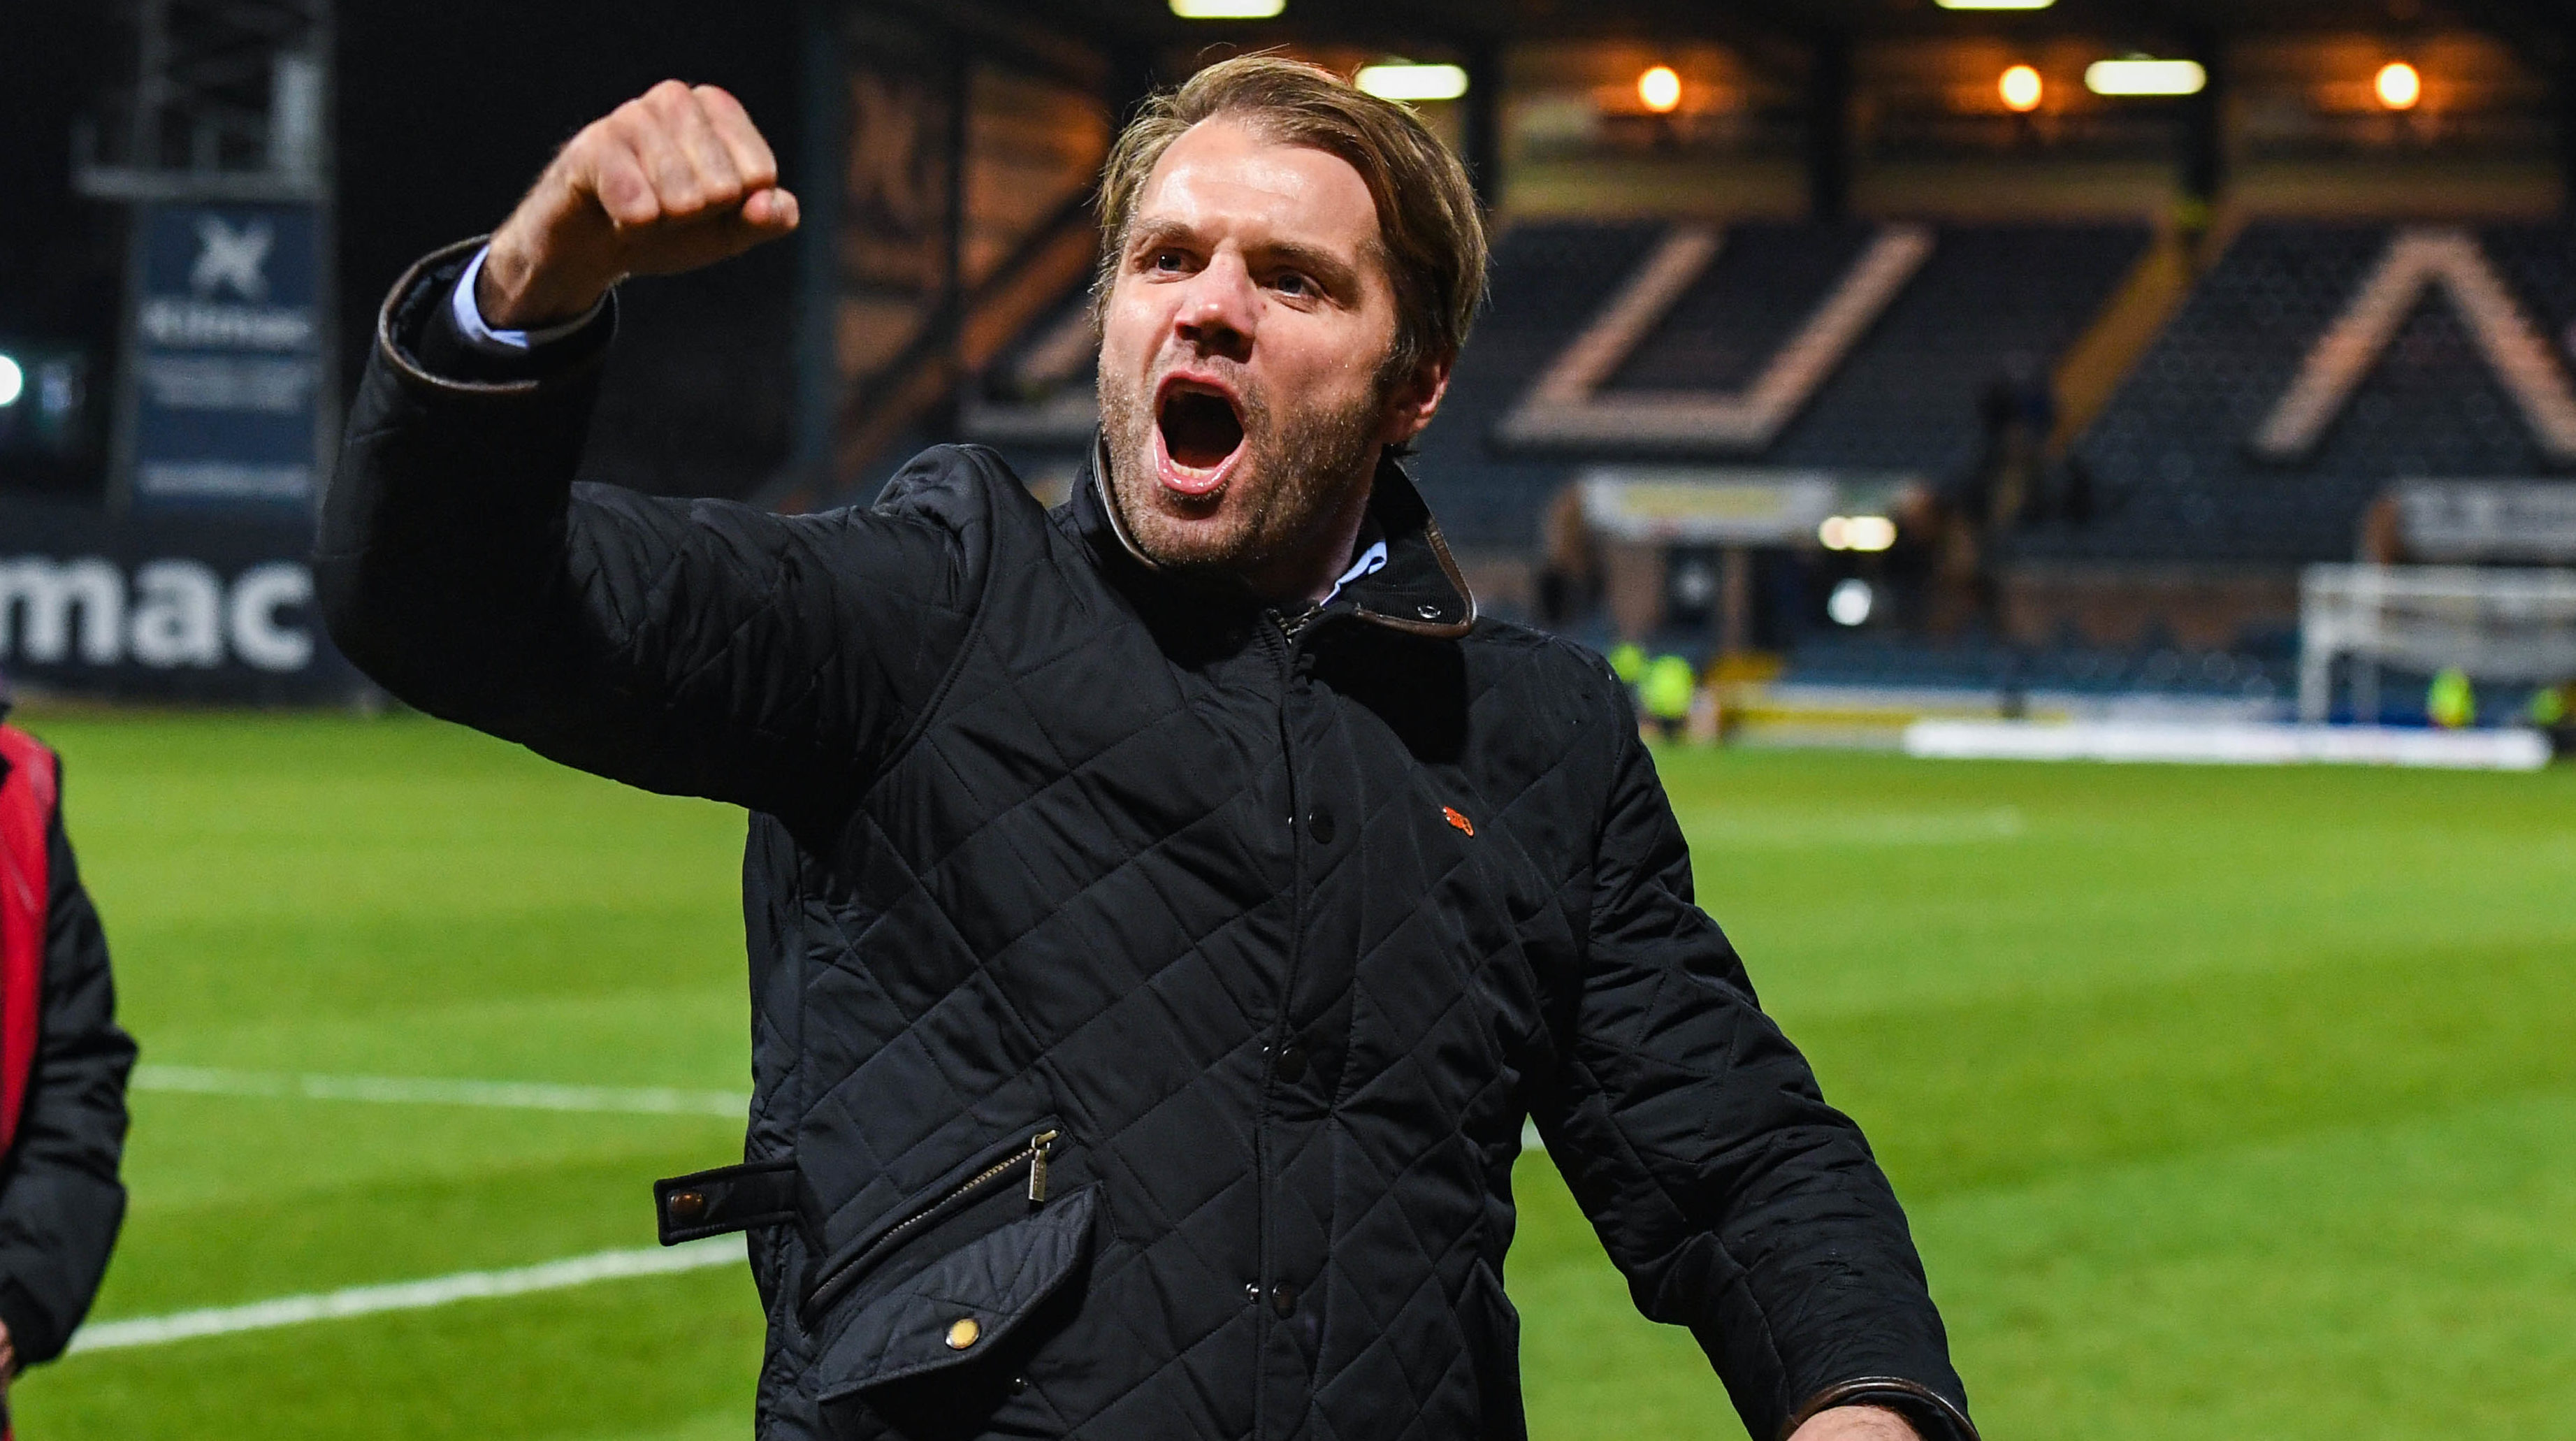 Dundee's voting U-turn led to rivals United and Robbie Neilson winning Championship title